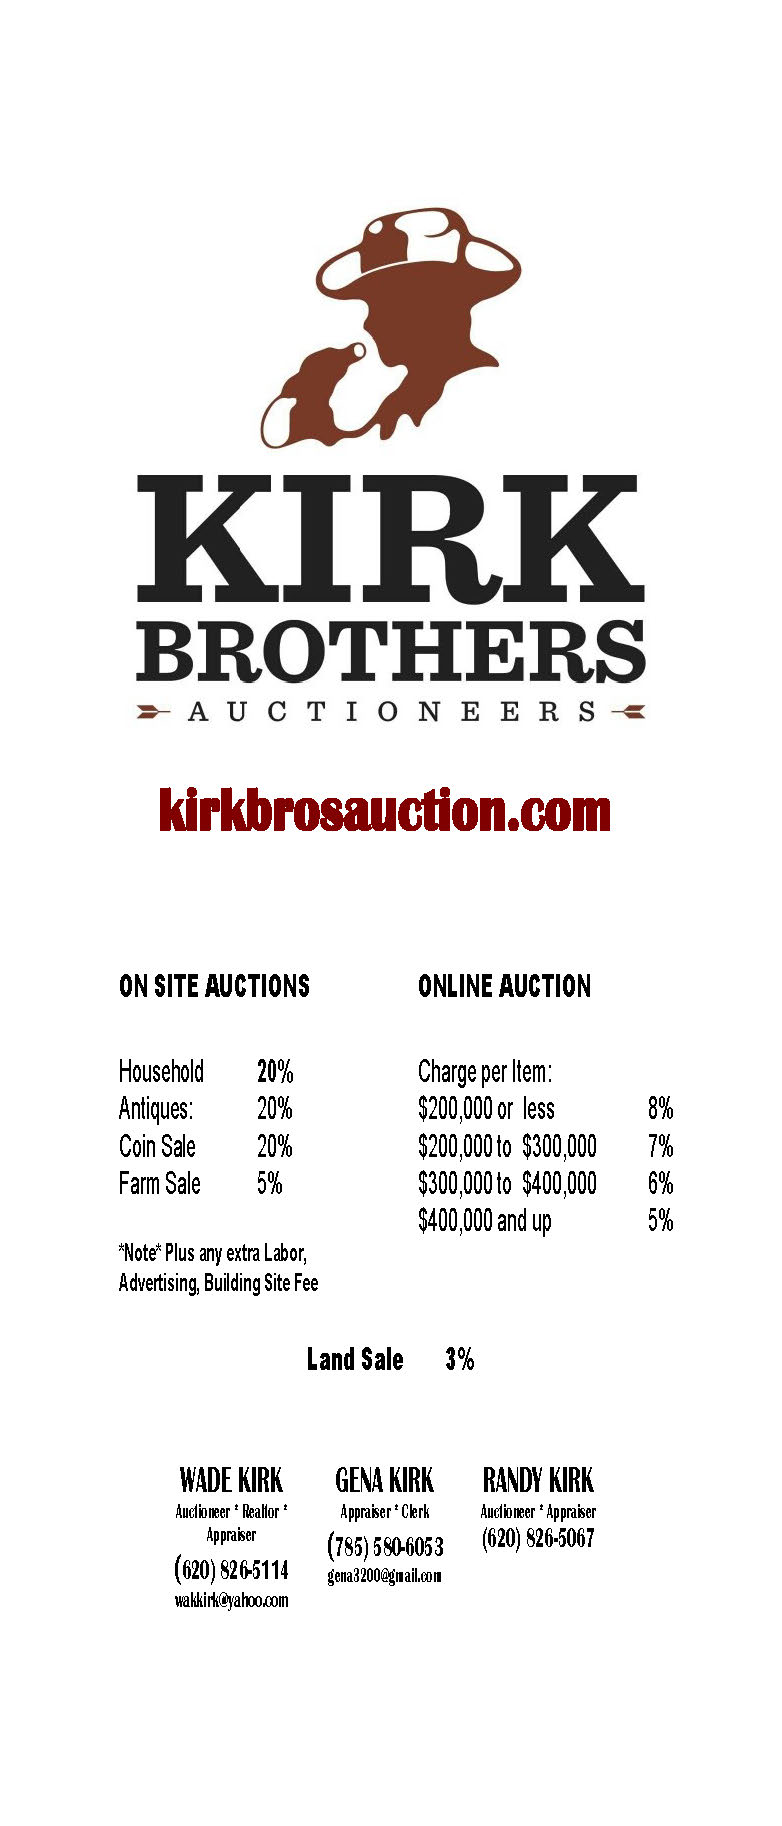 Kirk Brothers Auctioneers rates